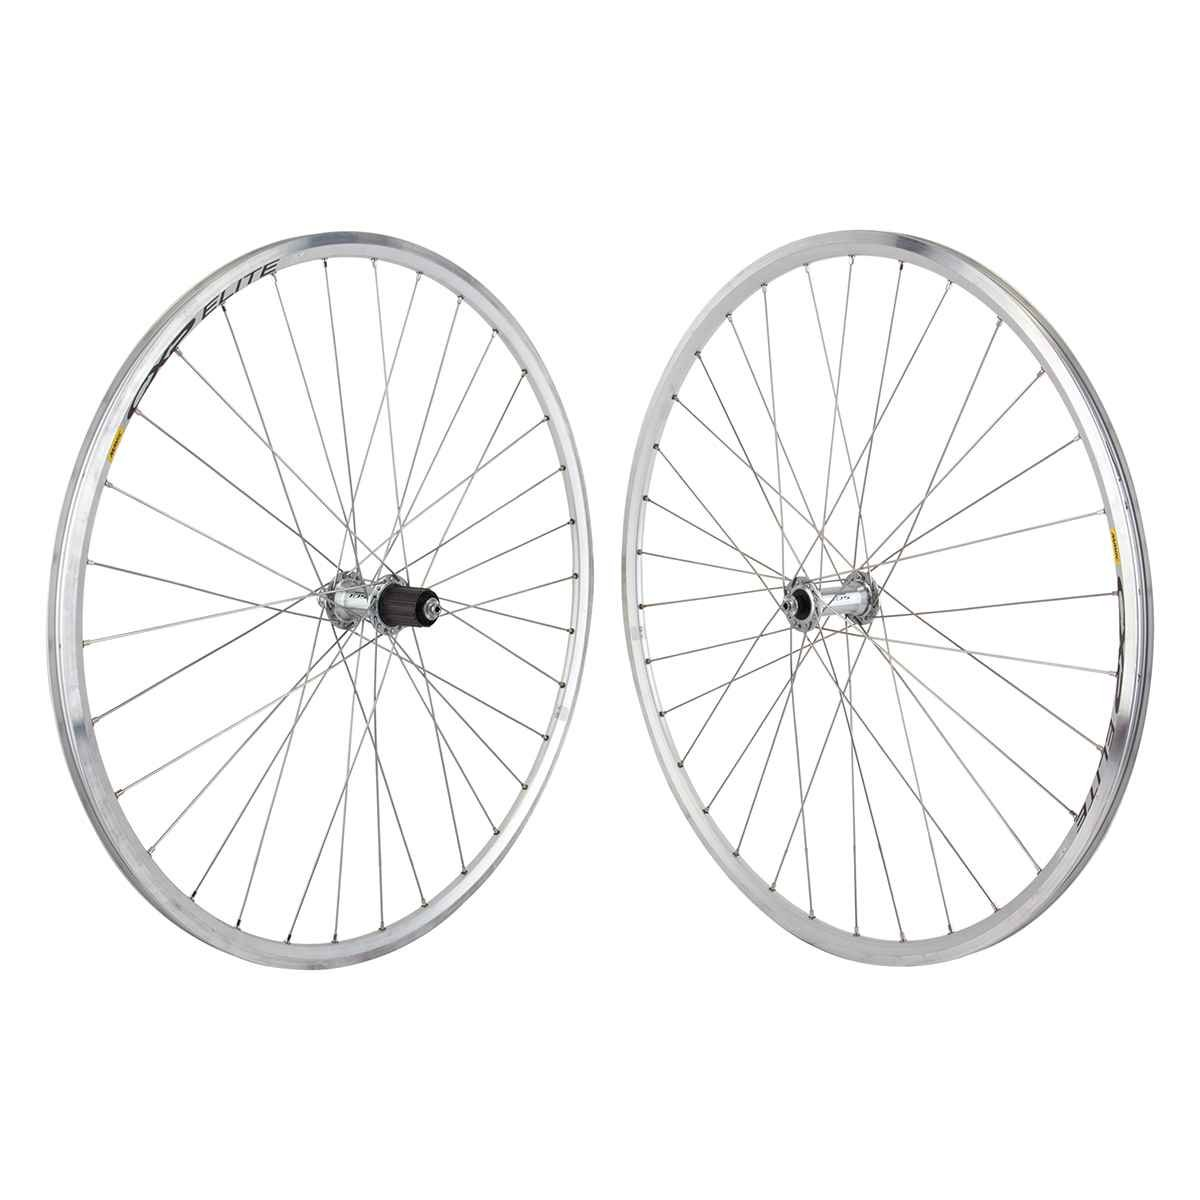 Mavic Elite Silver Road Bike Wheelset Shimano 105 5800 9 10 11Speed Hub fit SRAM